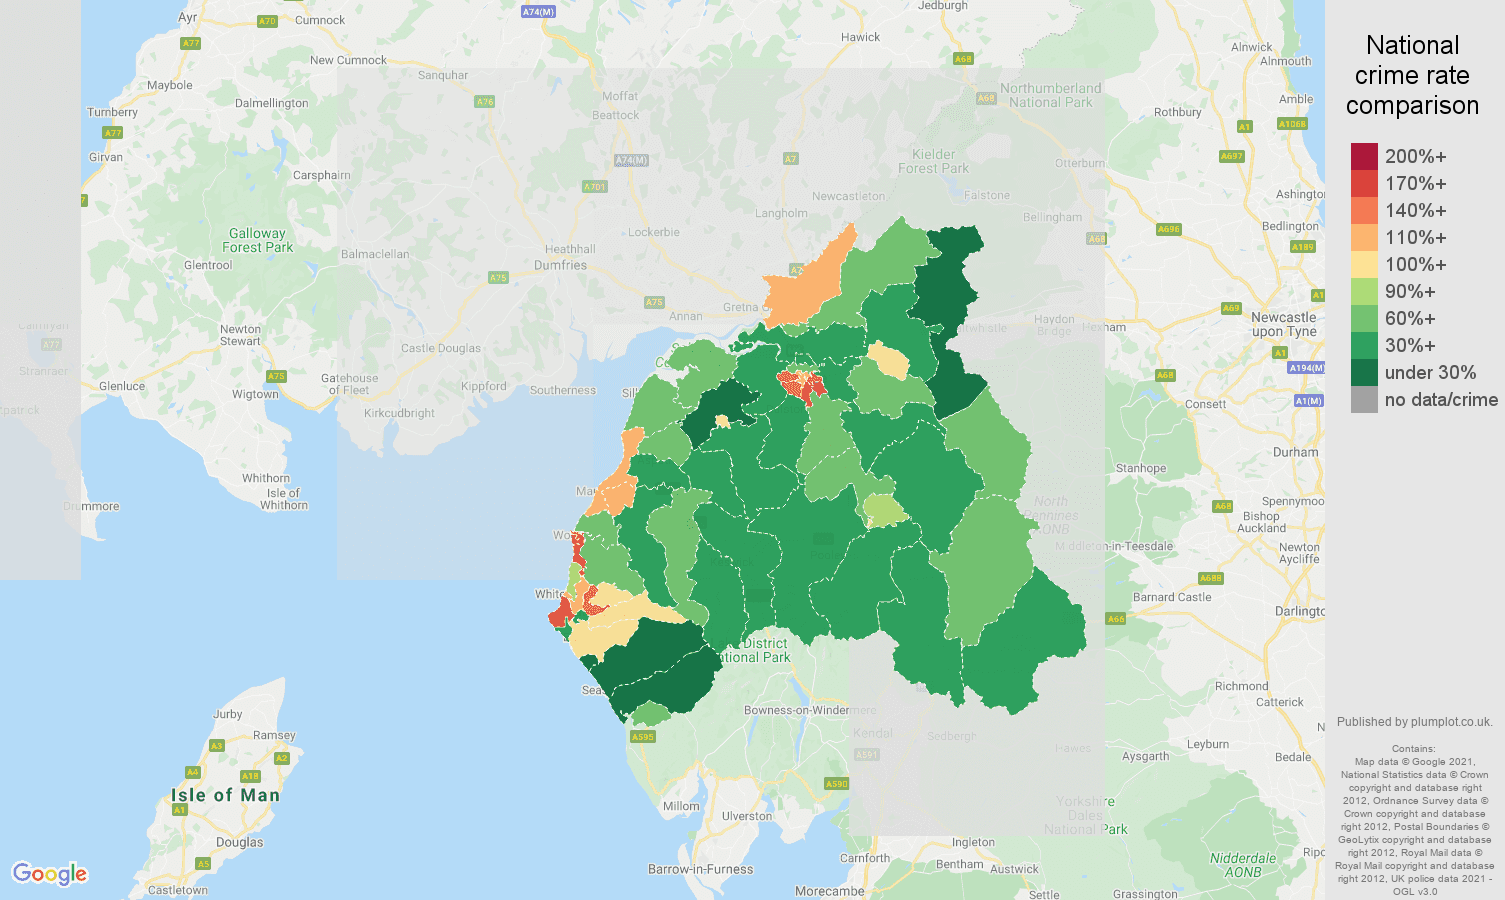 Carlisle violent crime rate comparison map